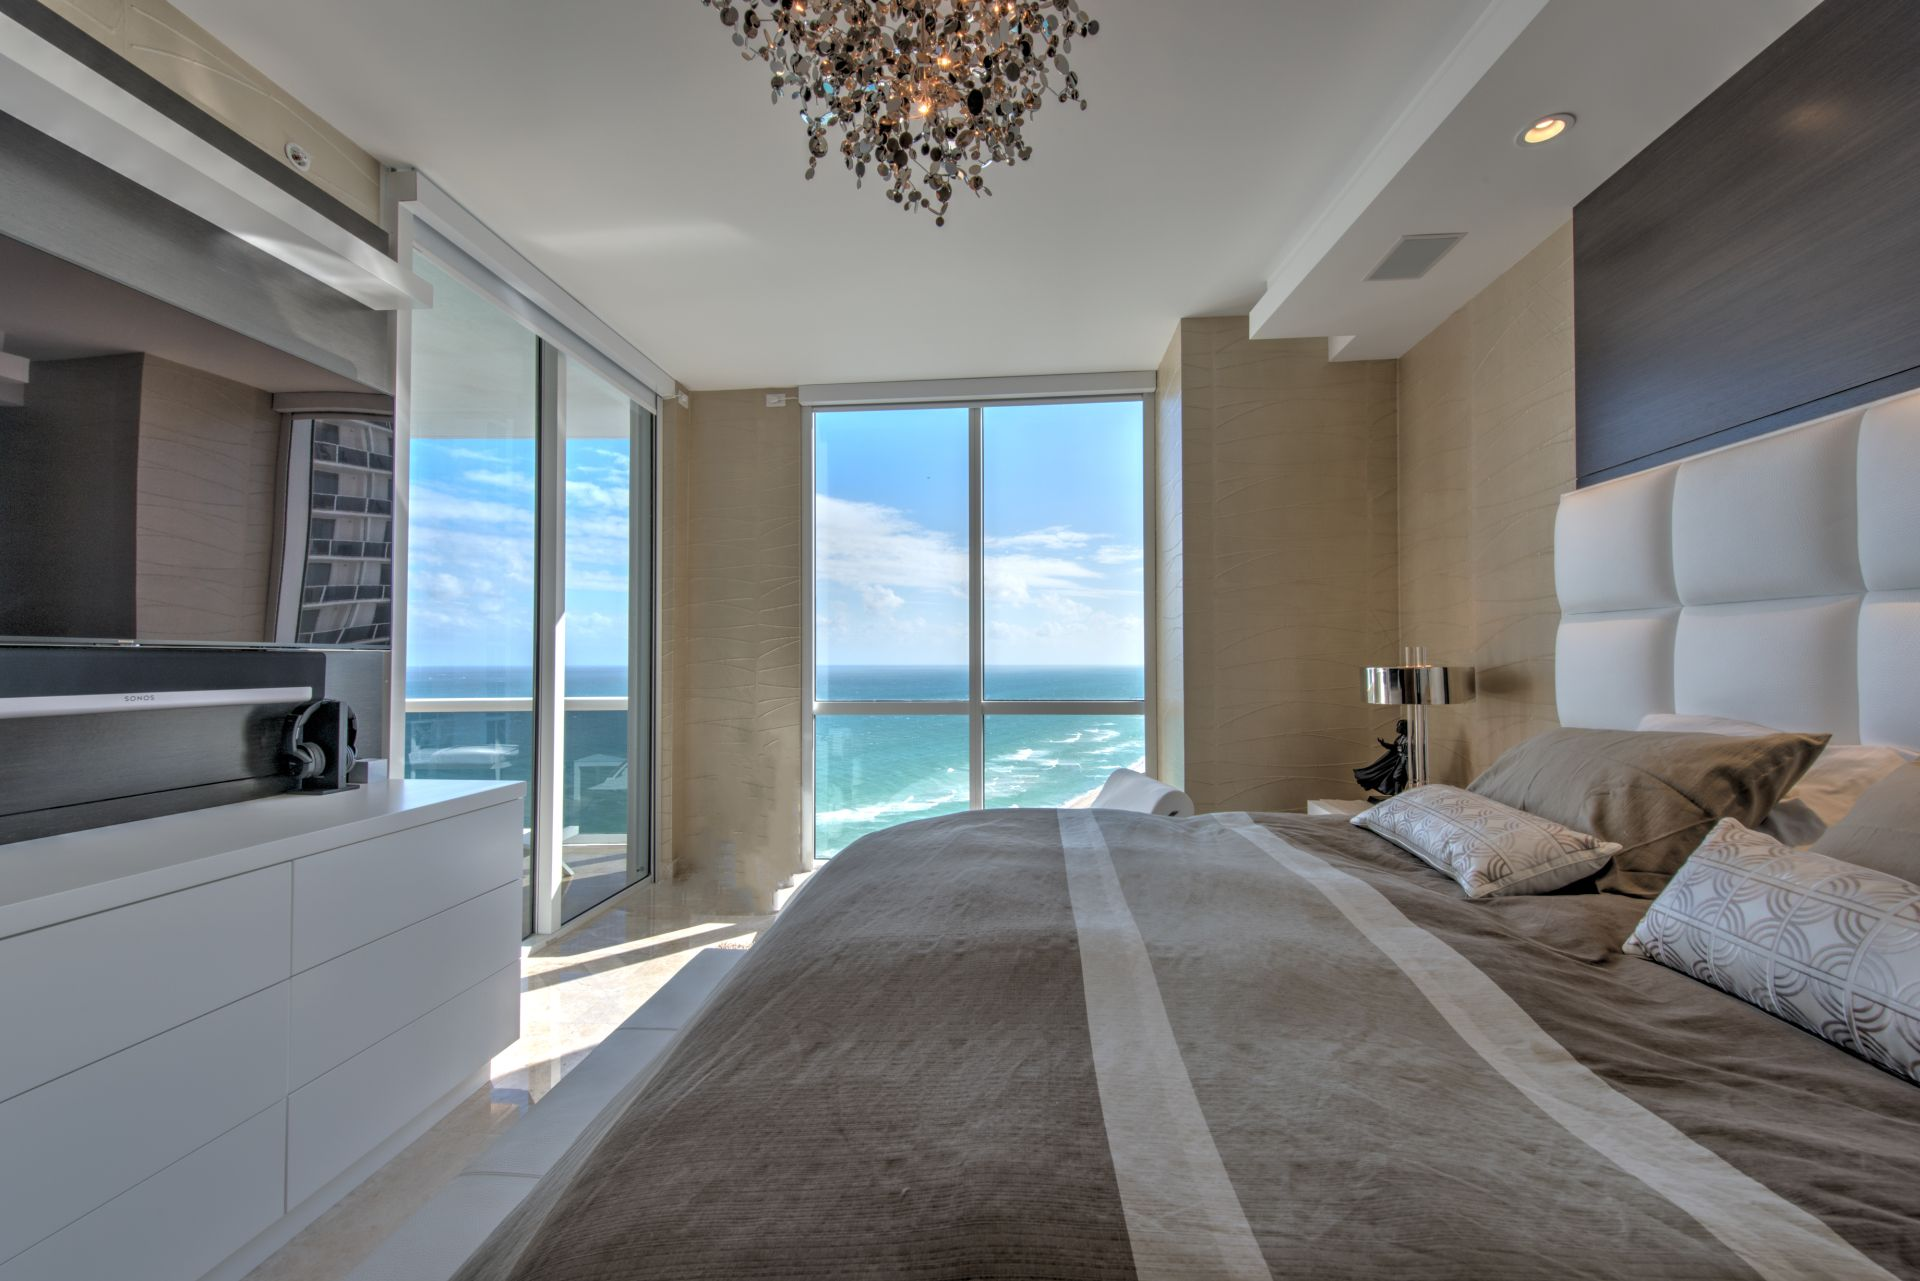 Trump Palace fully furnished 3 bedroom